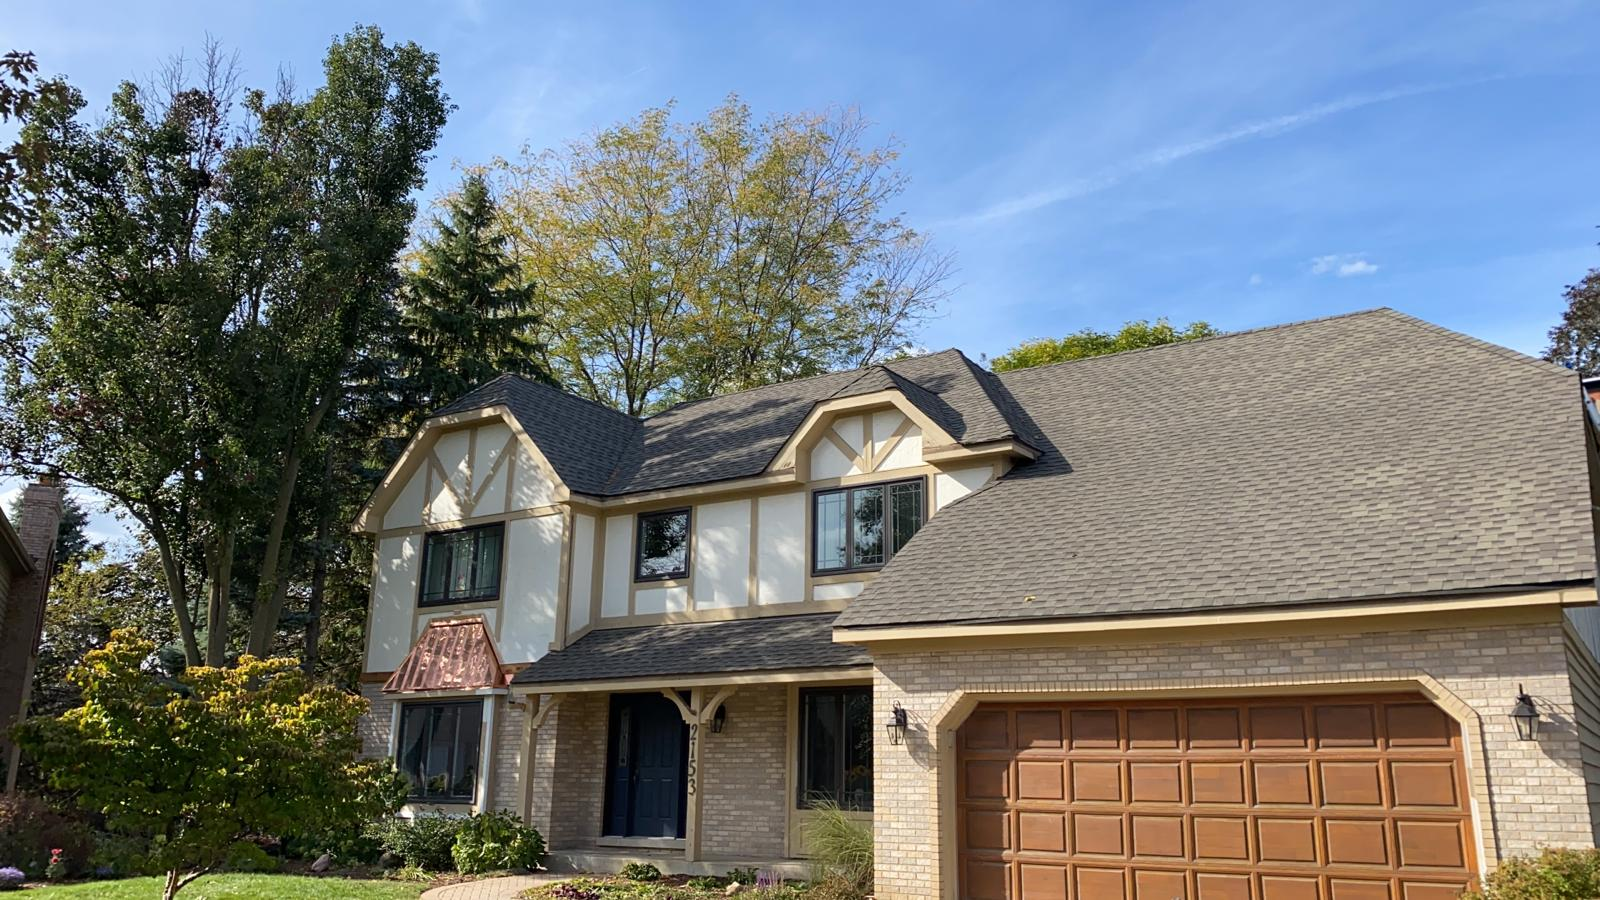 Naperville, IL roof completed by Feze Roofing Inc.